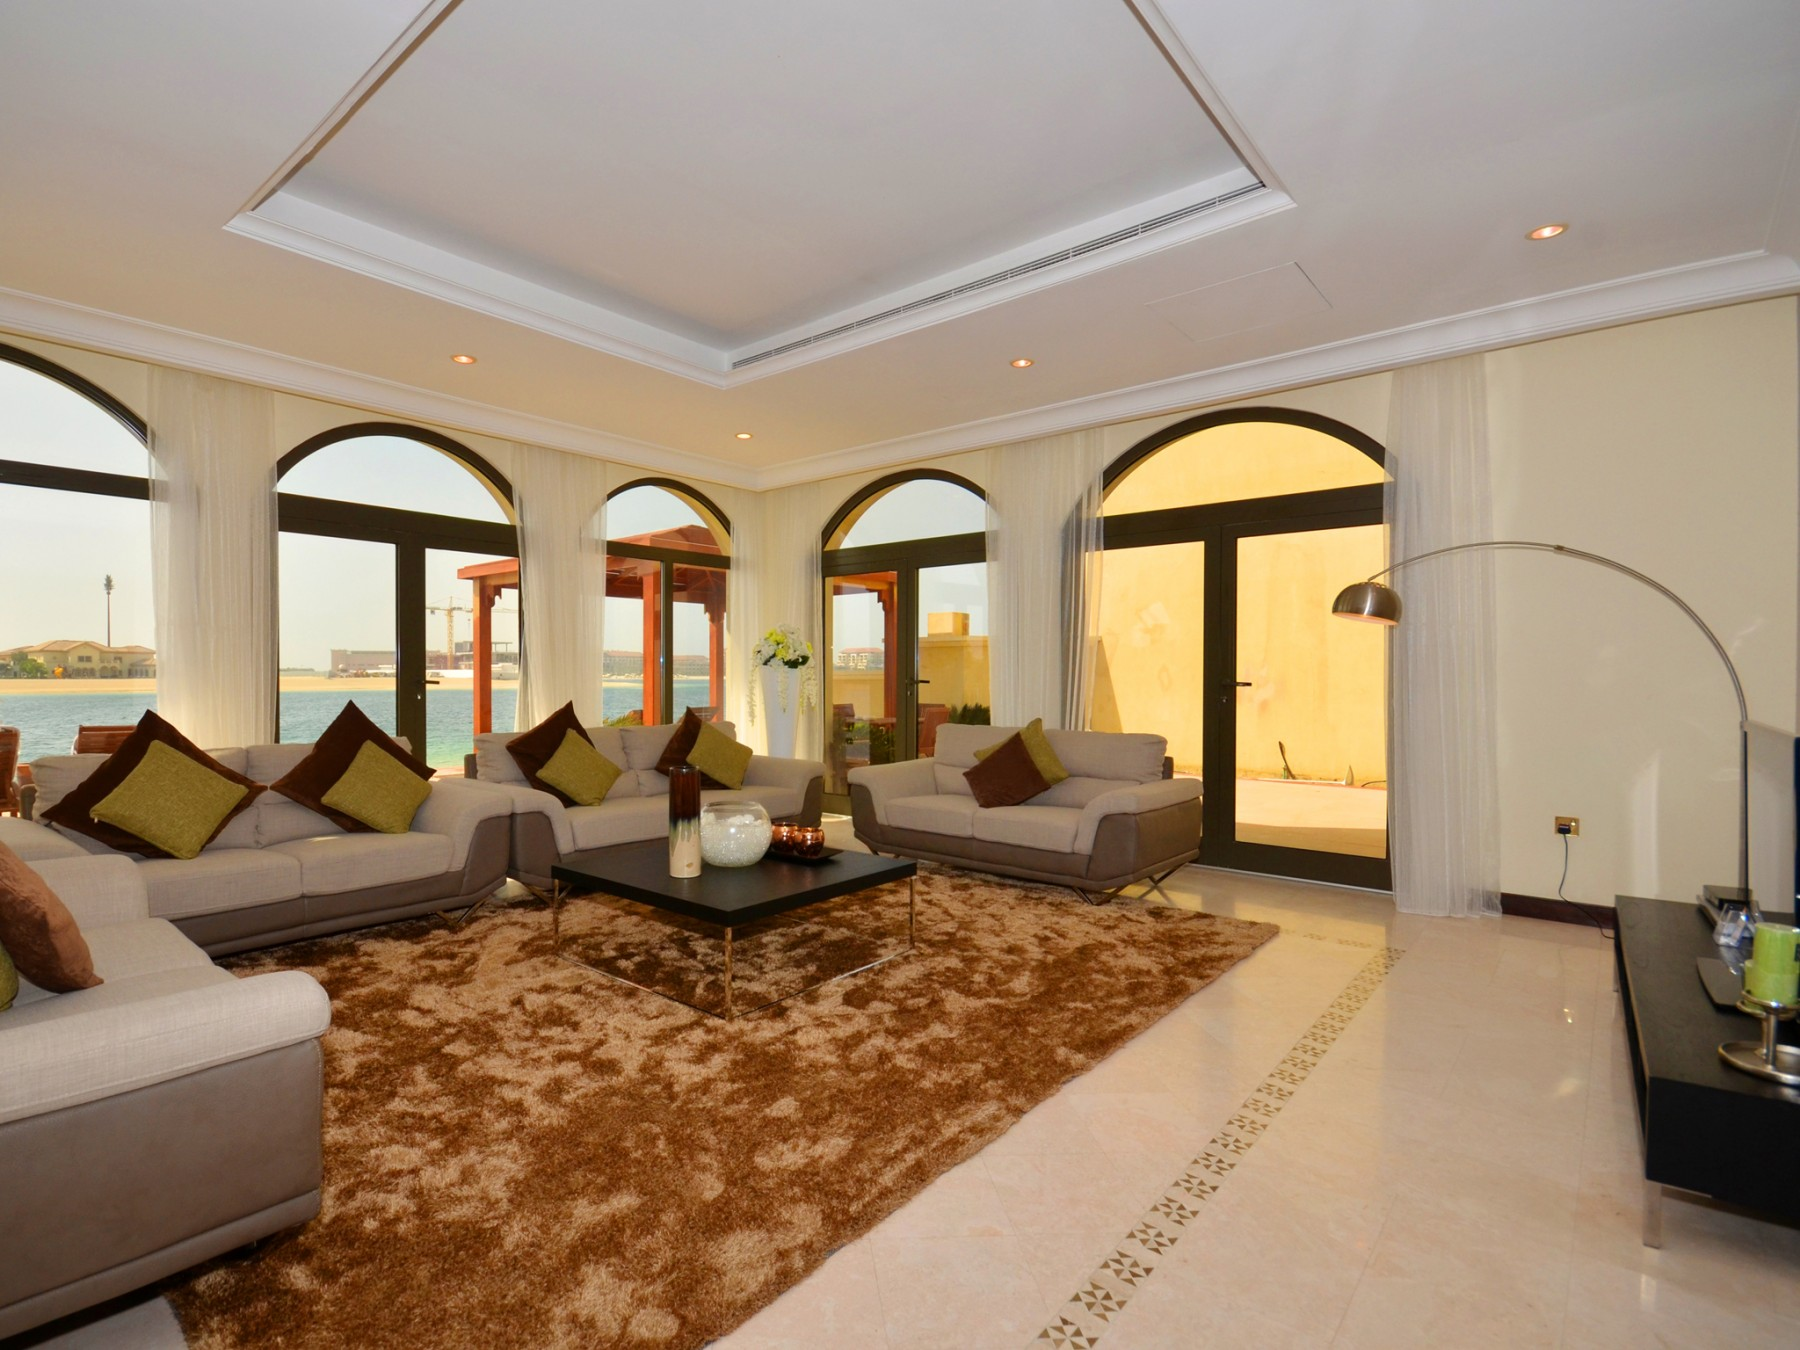 Villa in dubai luxurious palm island villa w private pool and beach